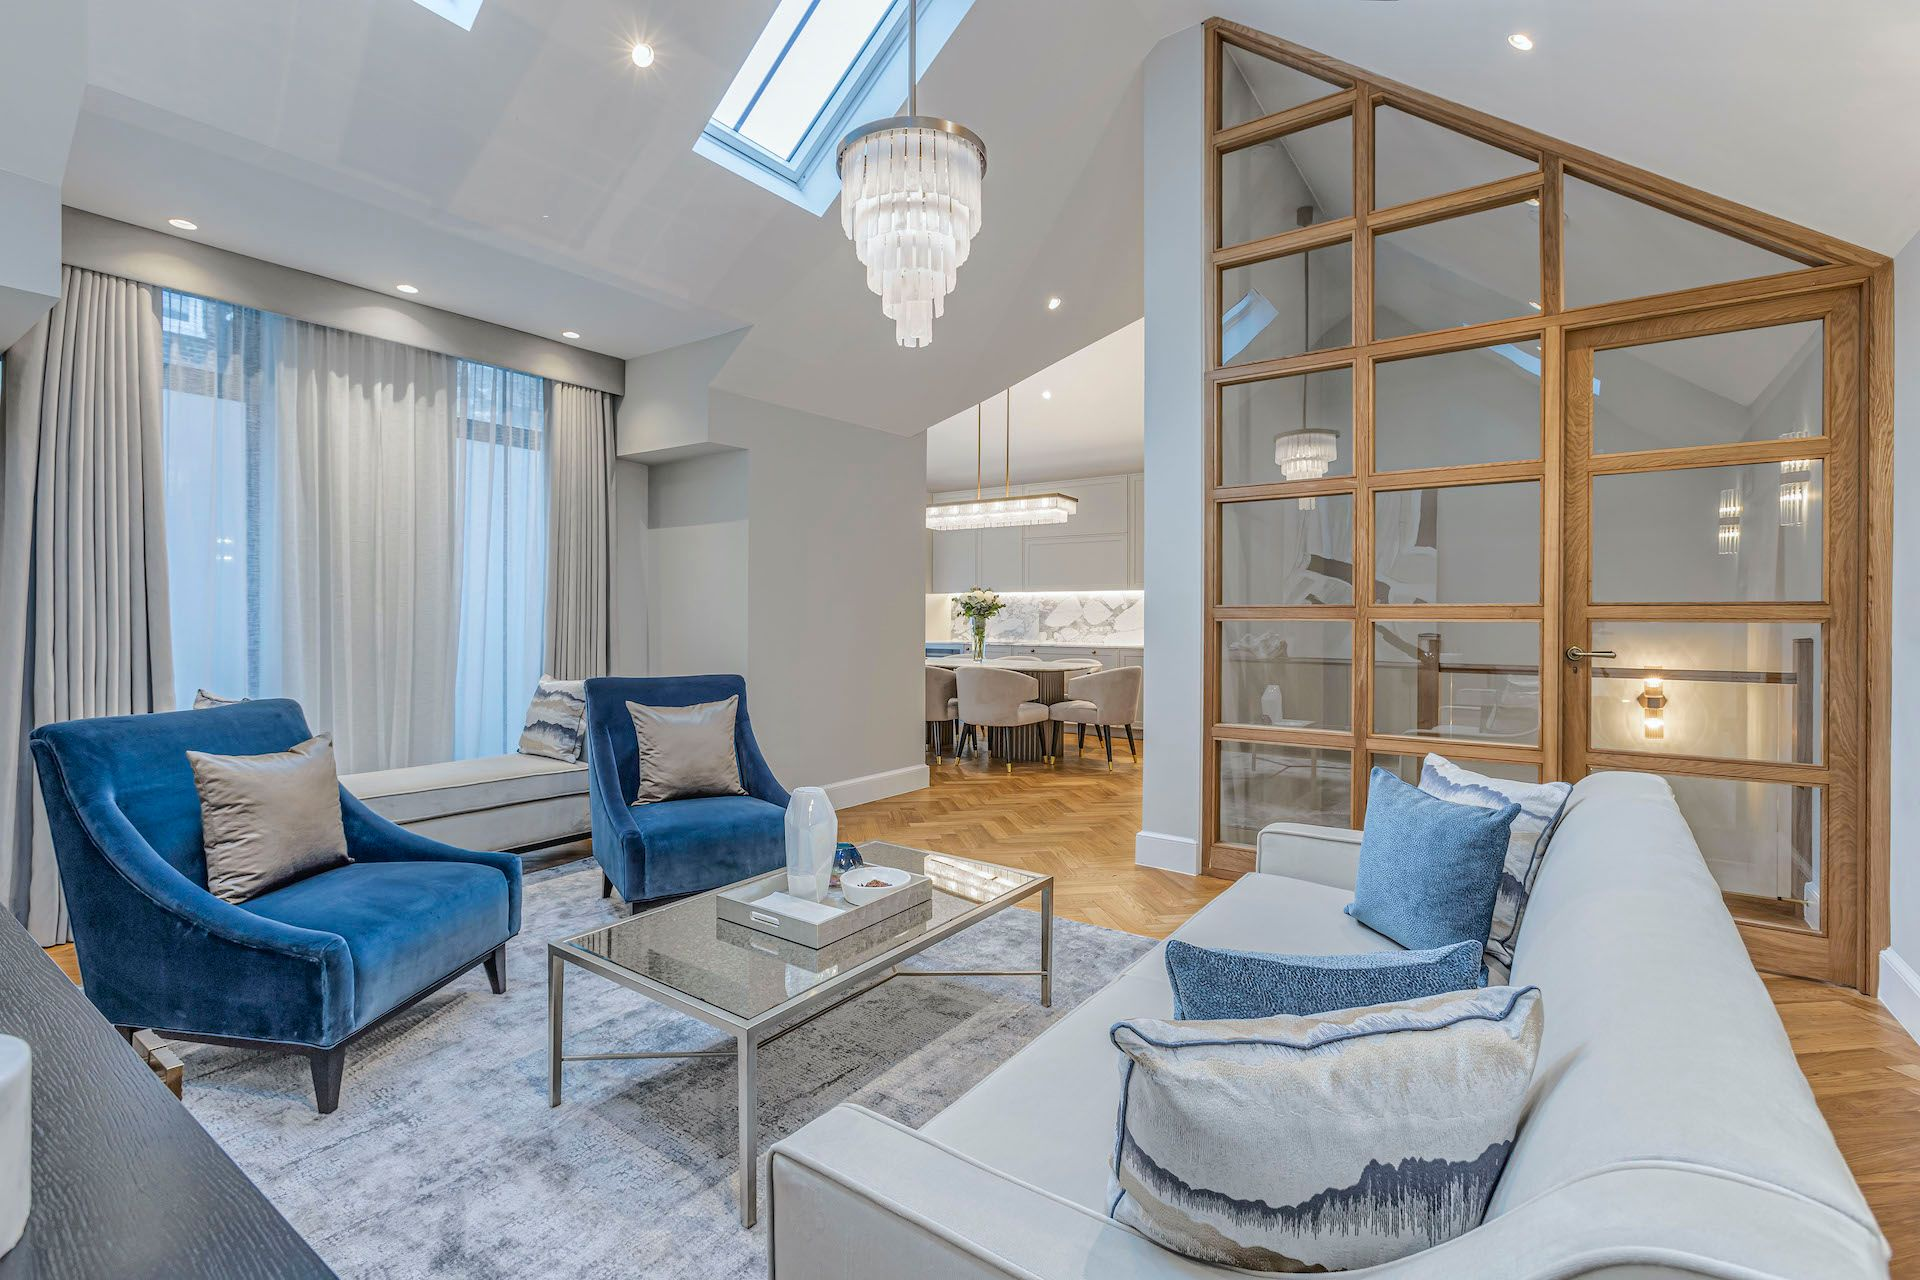 4 Bedroom apartment to rent in London WIM-WI-0011